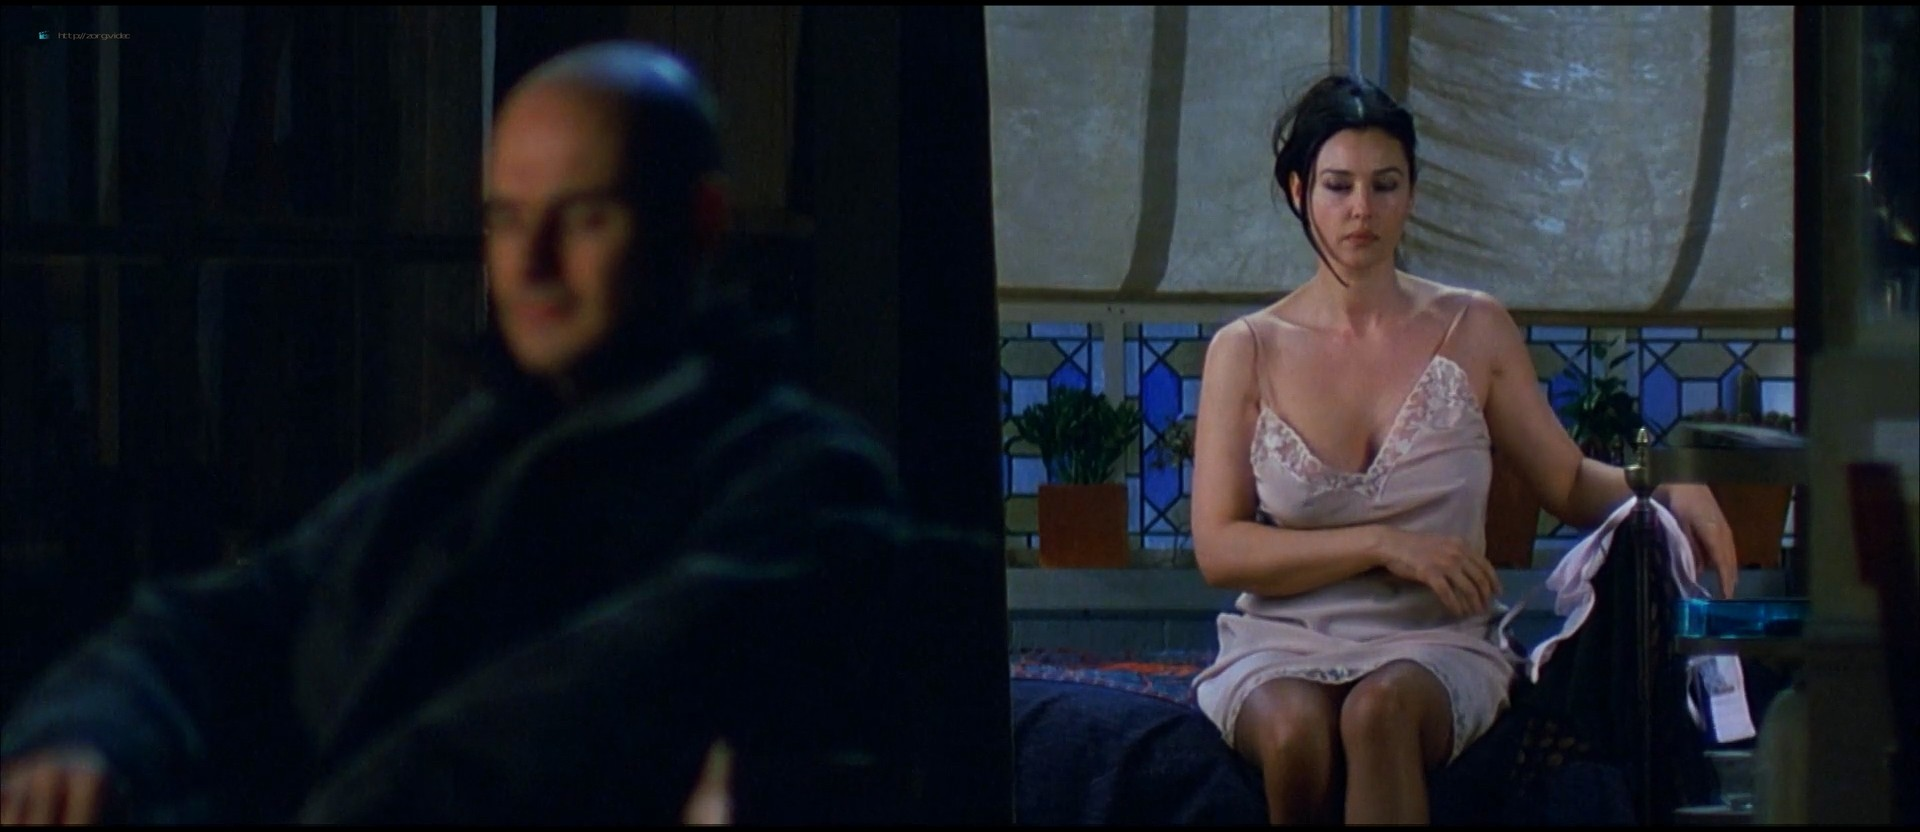 Monica Bellucci nude and sex - Combien tu m'aimes (2005) HD 1080p WEB (13)